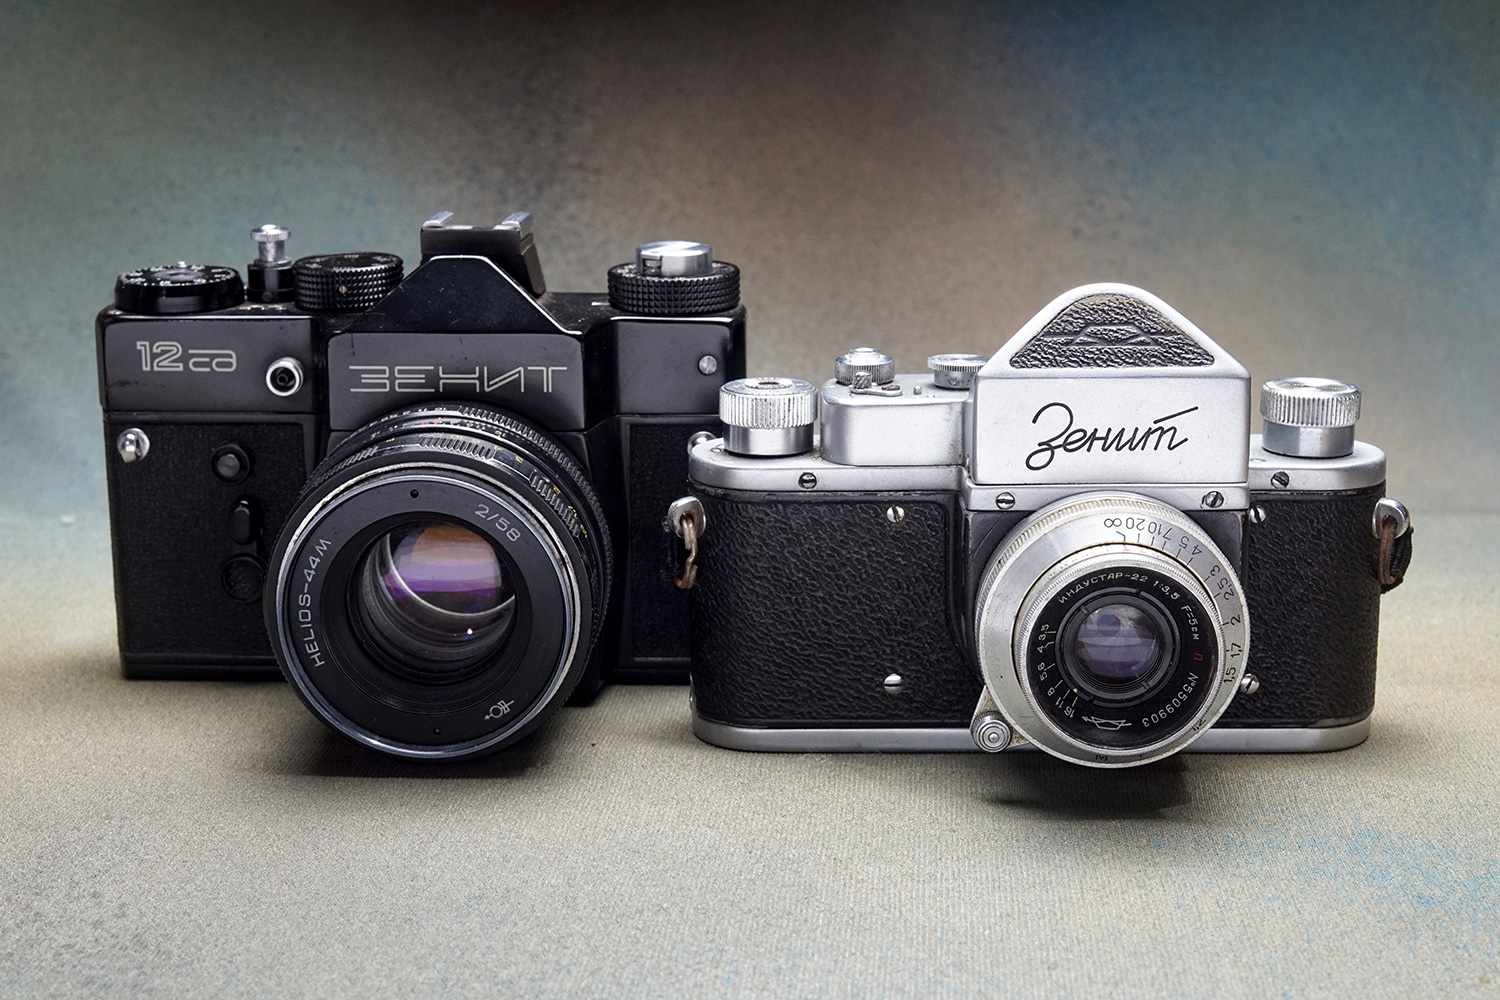 Zenit-12SD and Zenit-1 (Pic: Jay Javier)